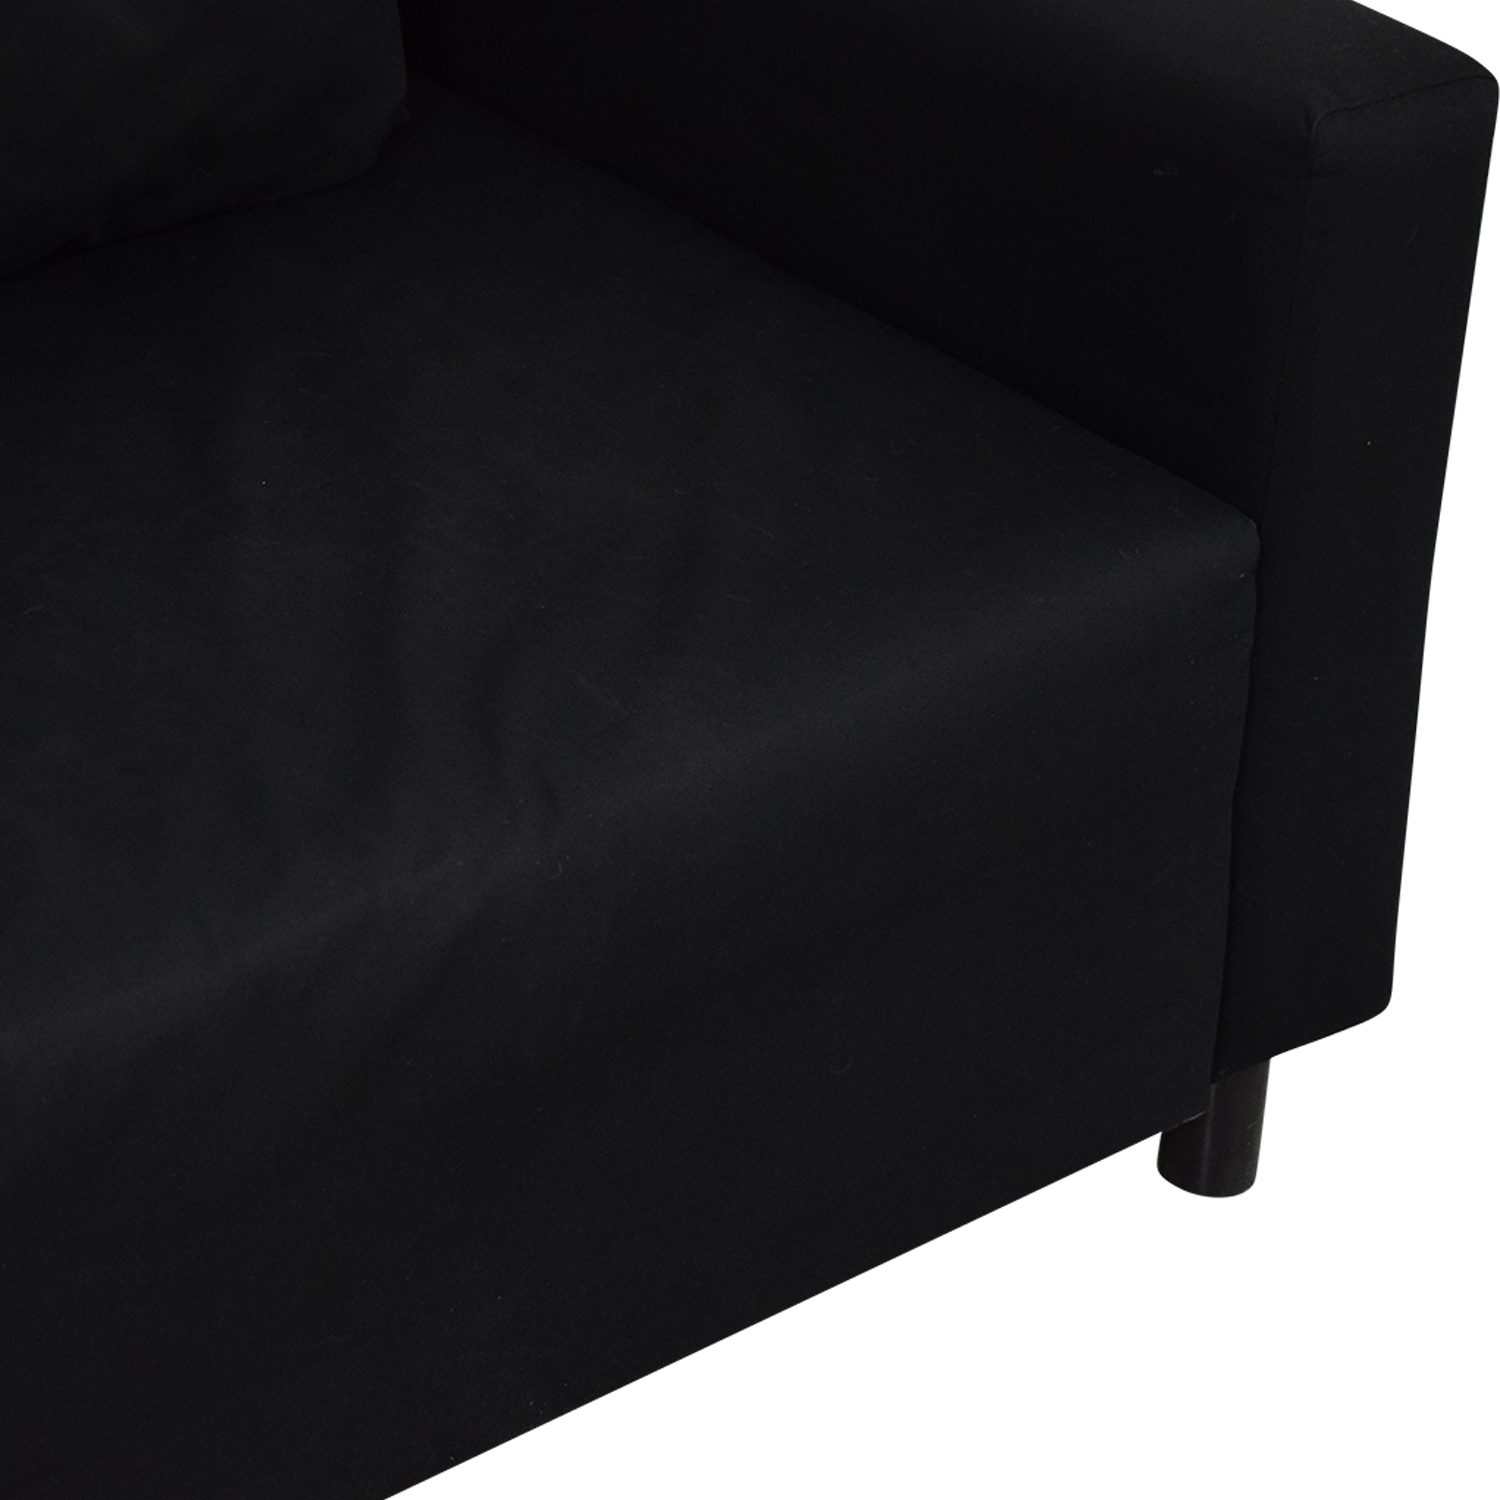 IKEA IKEA Lugnvik Sofa Bed with Chaise Lounge ct